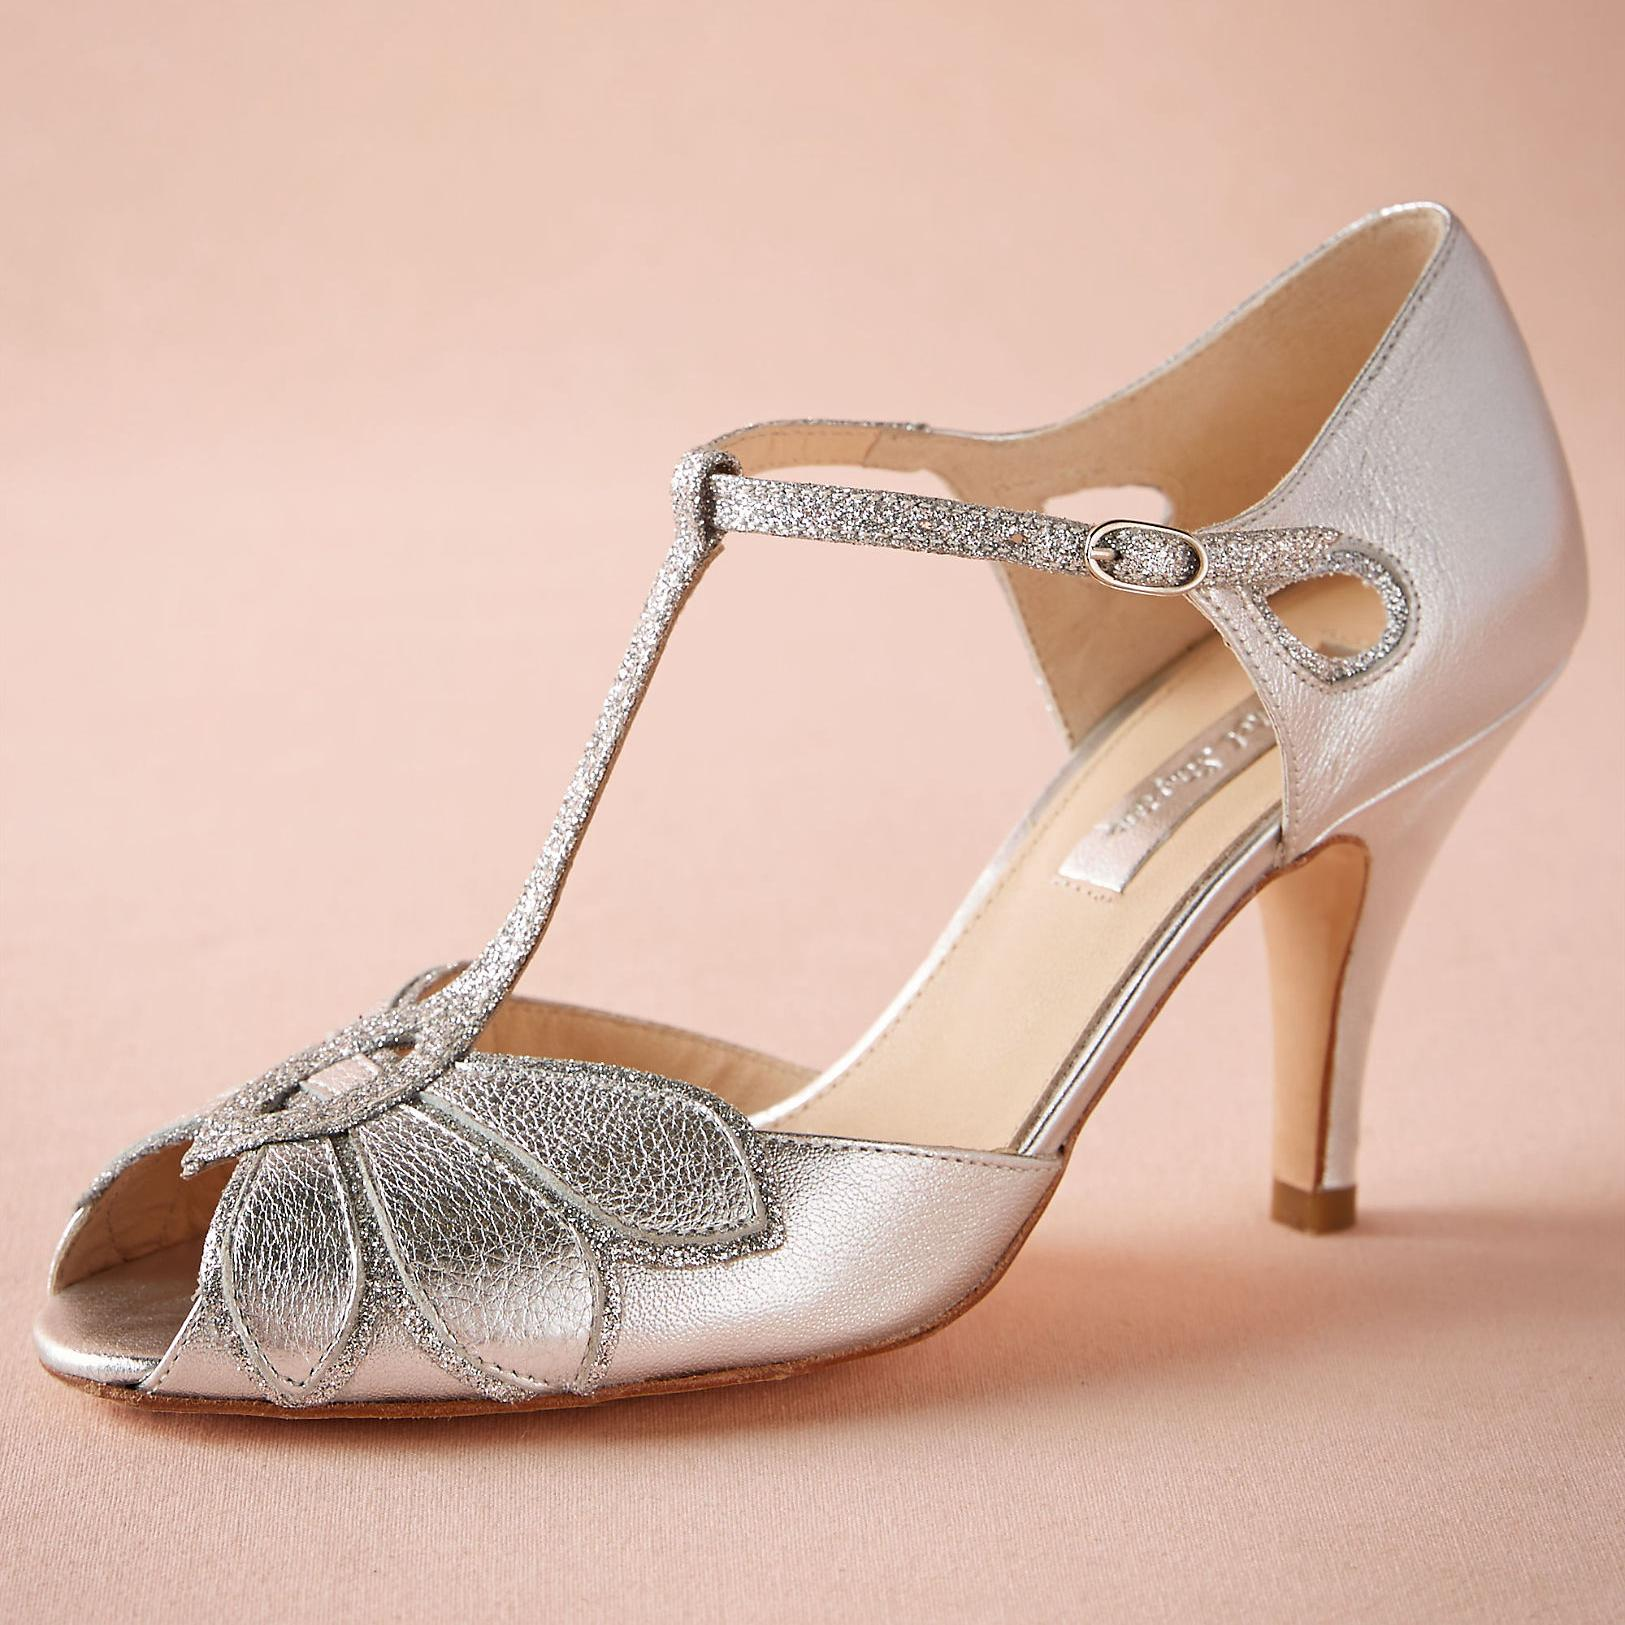 "Silver Wedding Shoes Glitter Pumps Mimosa T-Straps Buckle Closure Leather Party Dance 3"" High Heels Women Sandals Open Toe Bridal Shoes"